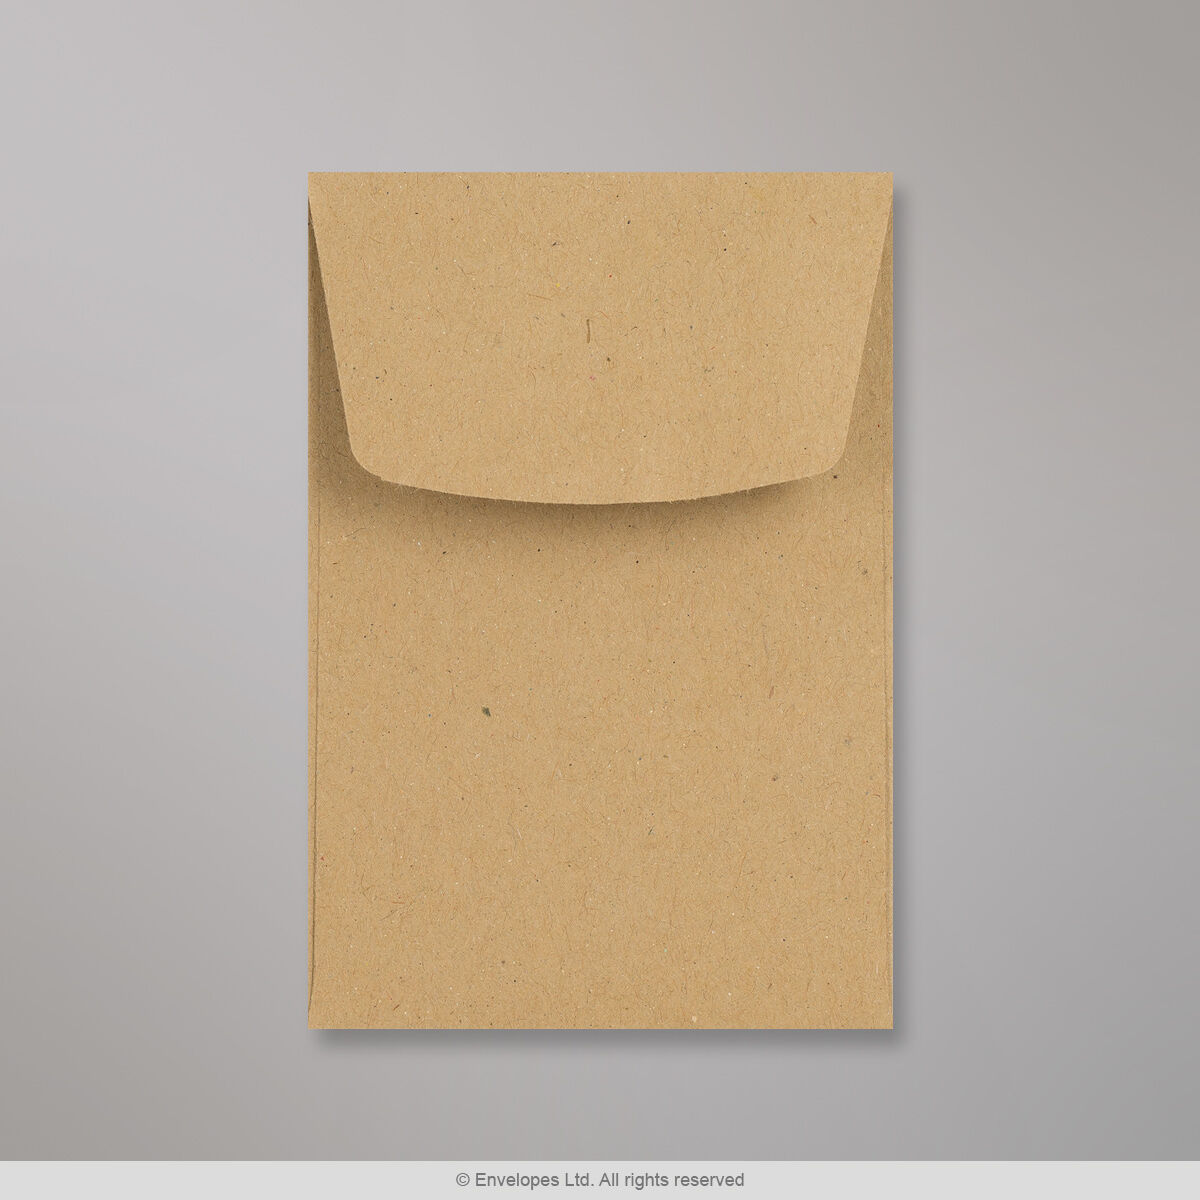 Small Brown Envelopes 98x67mm Dinner Money Wages Coins Beads And Seeds X 15 1 Of 1free Shipping